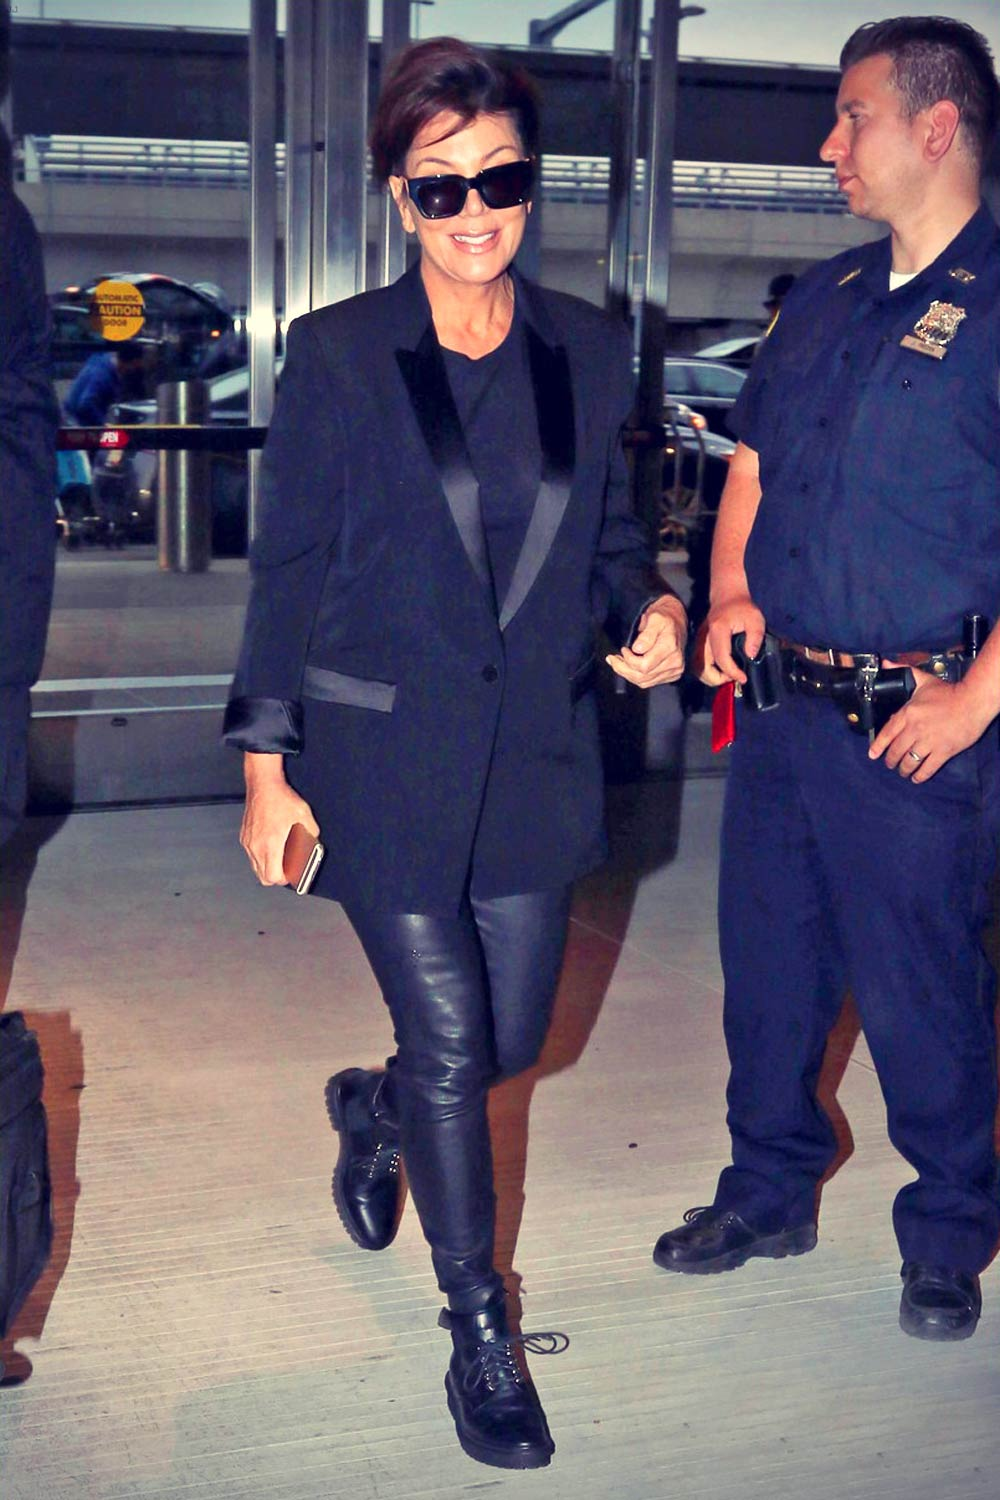 Kris Jenner arrives at JFK Airport for her departing flight